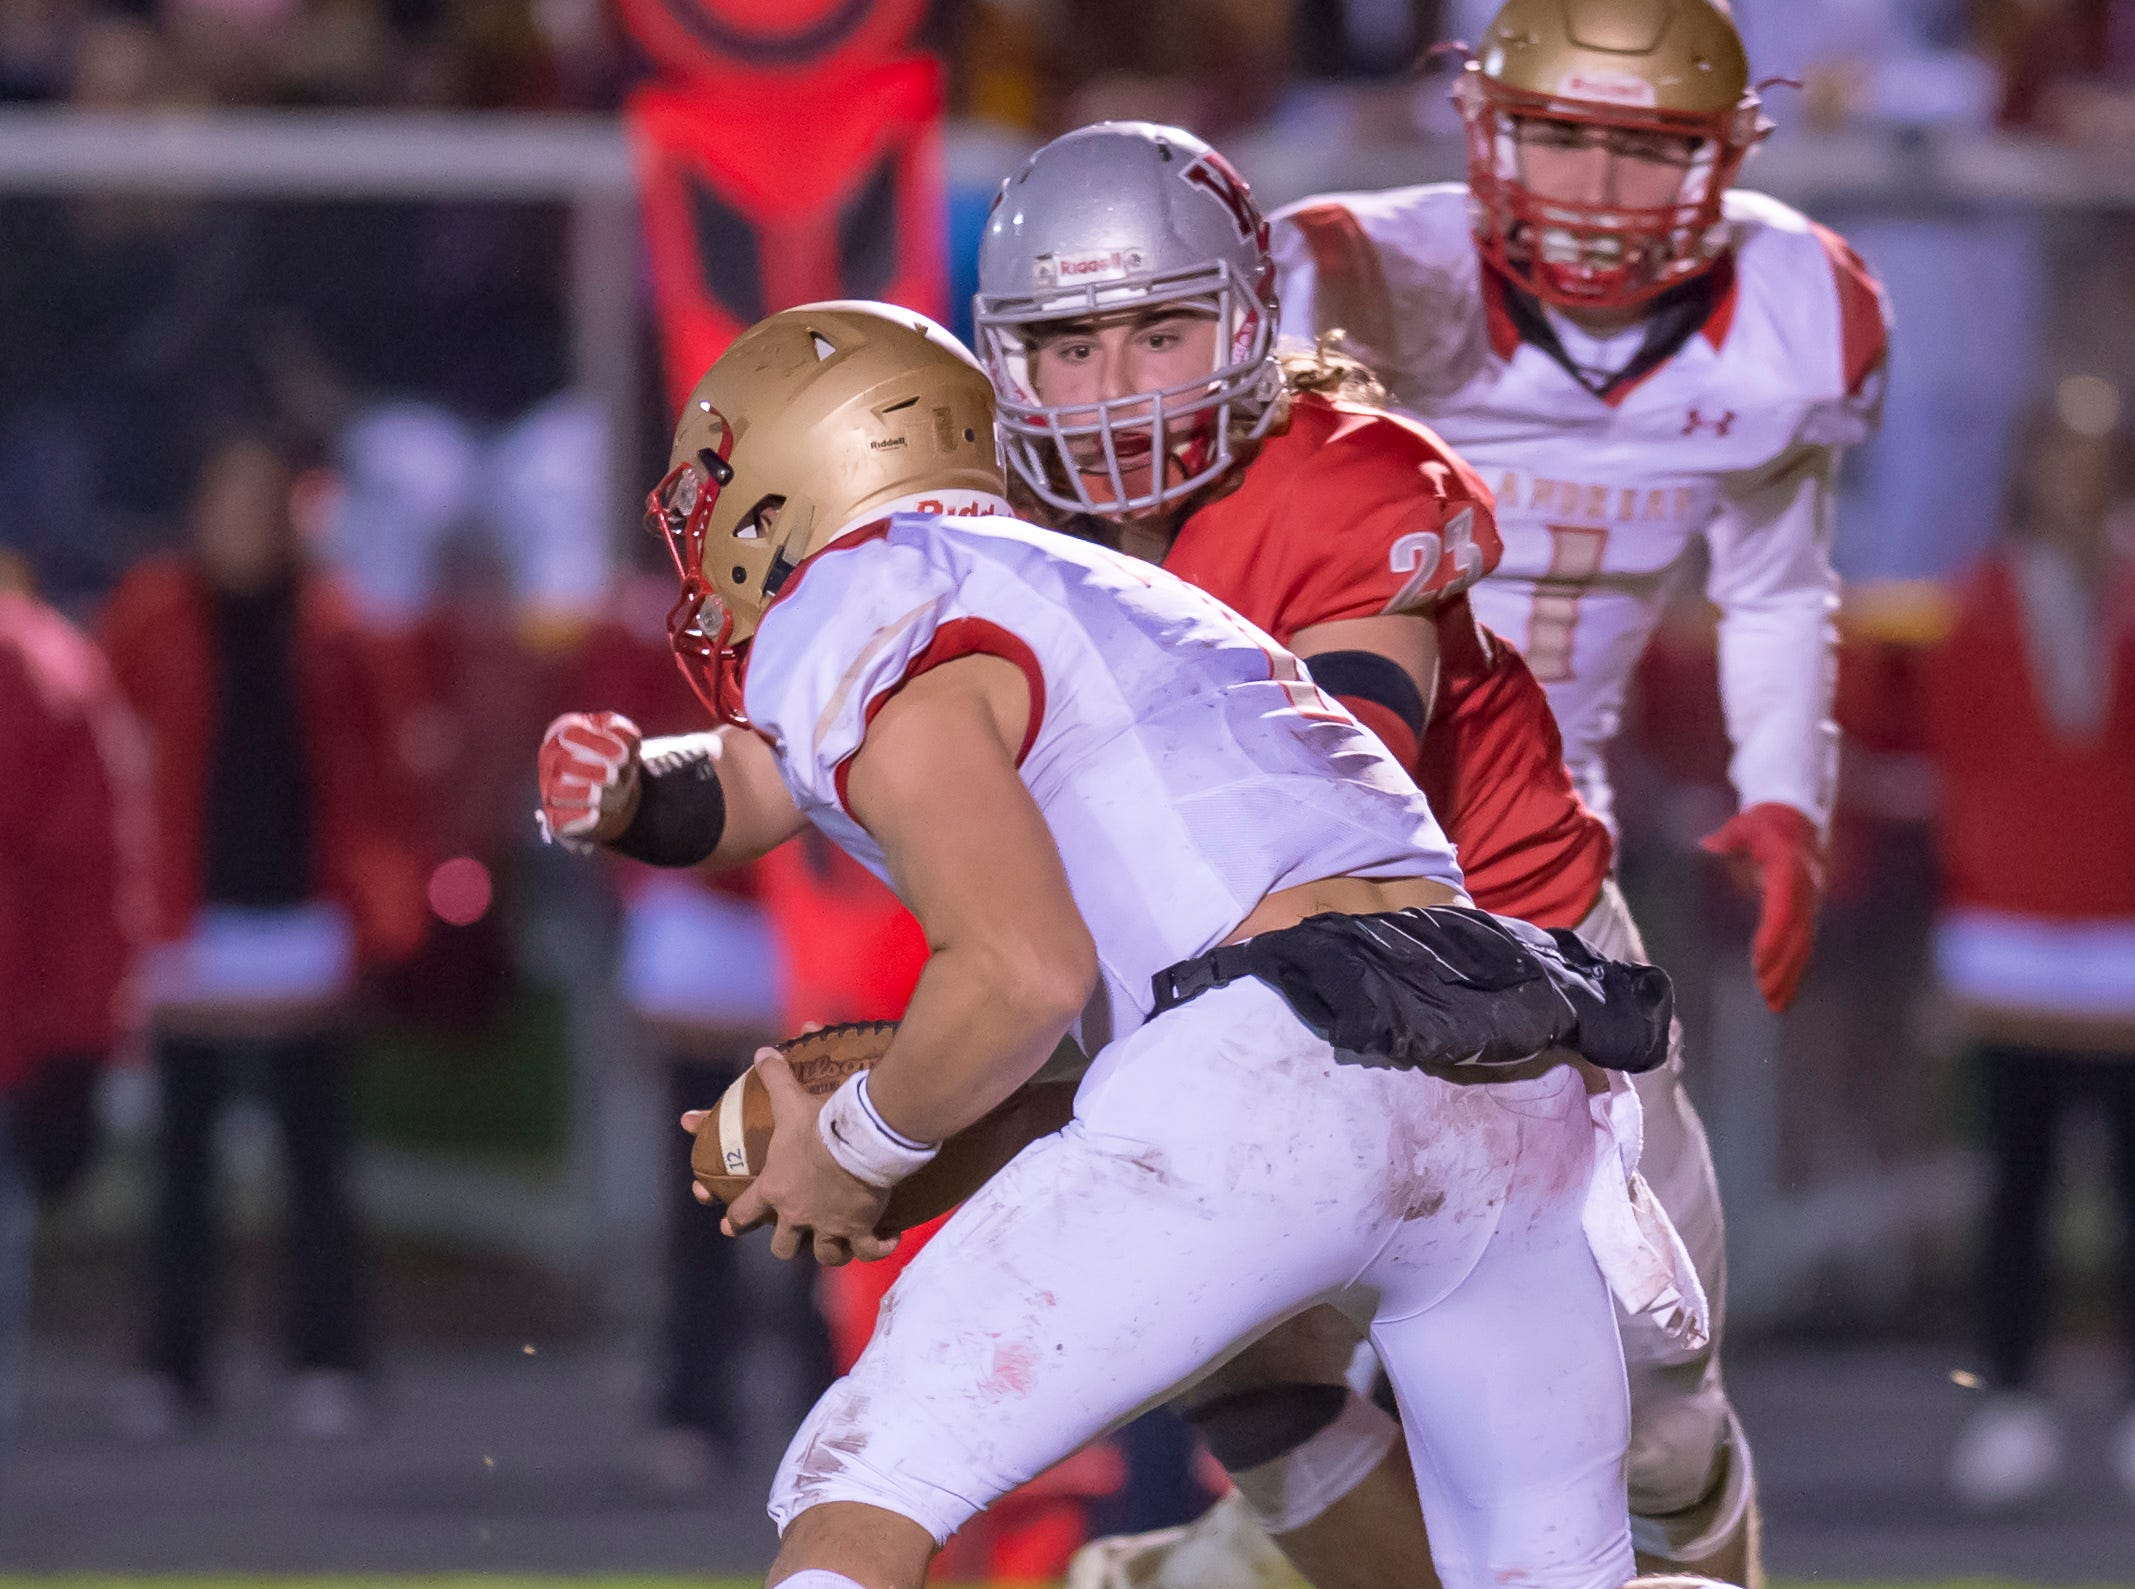 Justin Vasili racks up another tackle for loss in the sectional championship game between West Lafayette and Andrean.